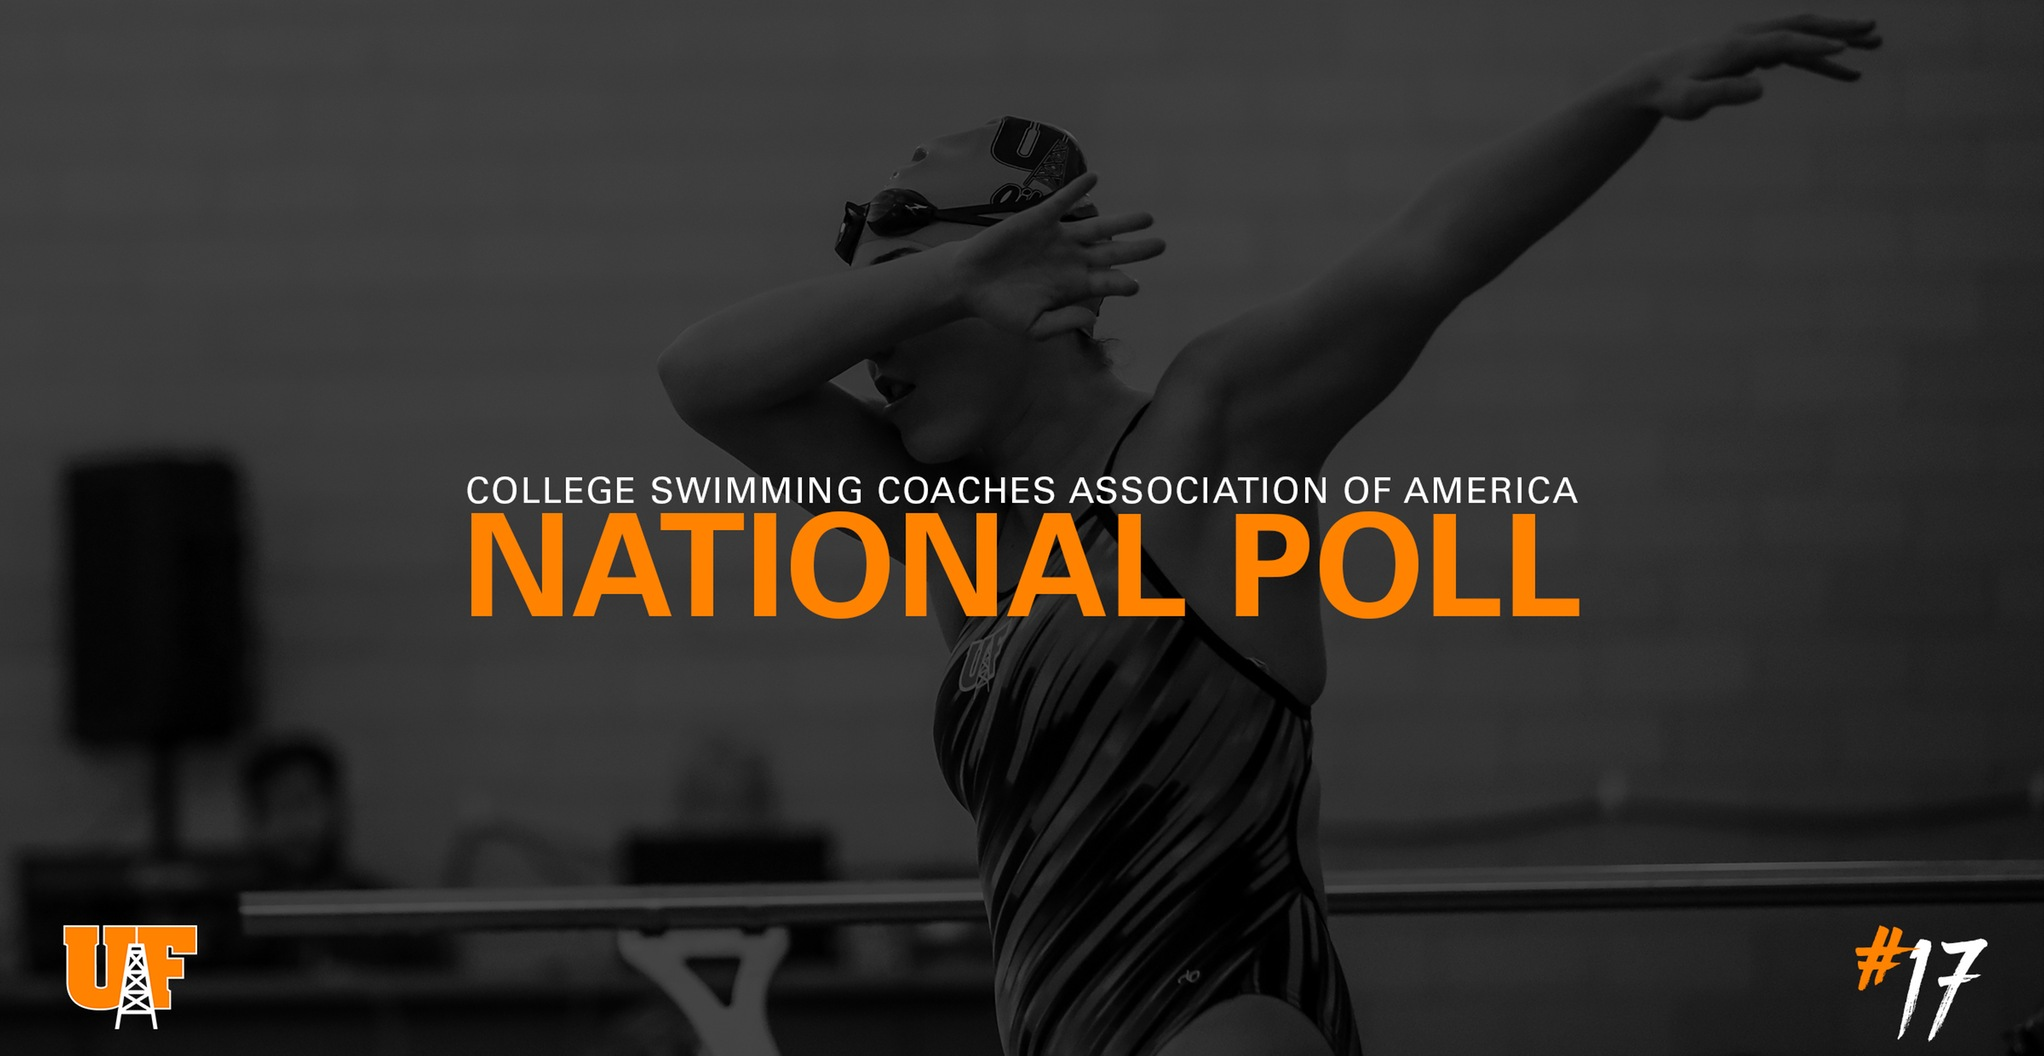 Women's Swimming & Diving Up to 17th in Poll